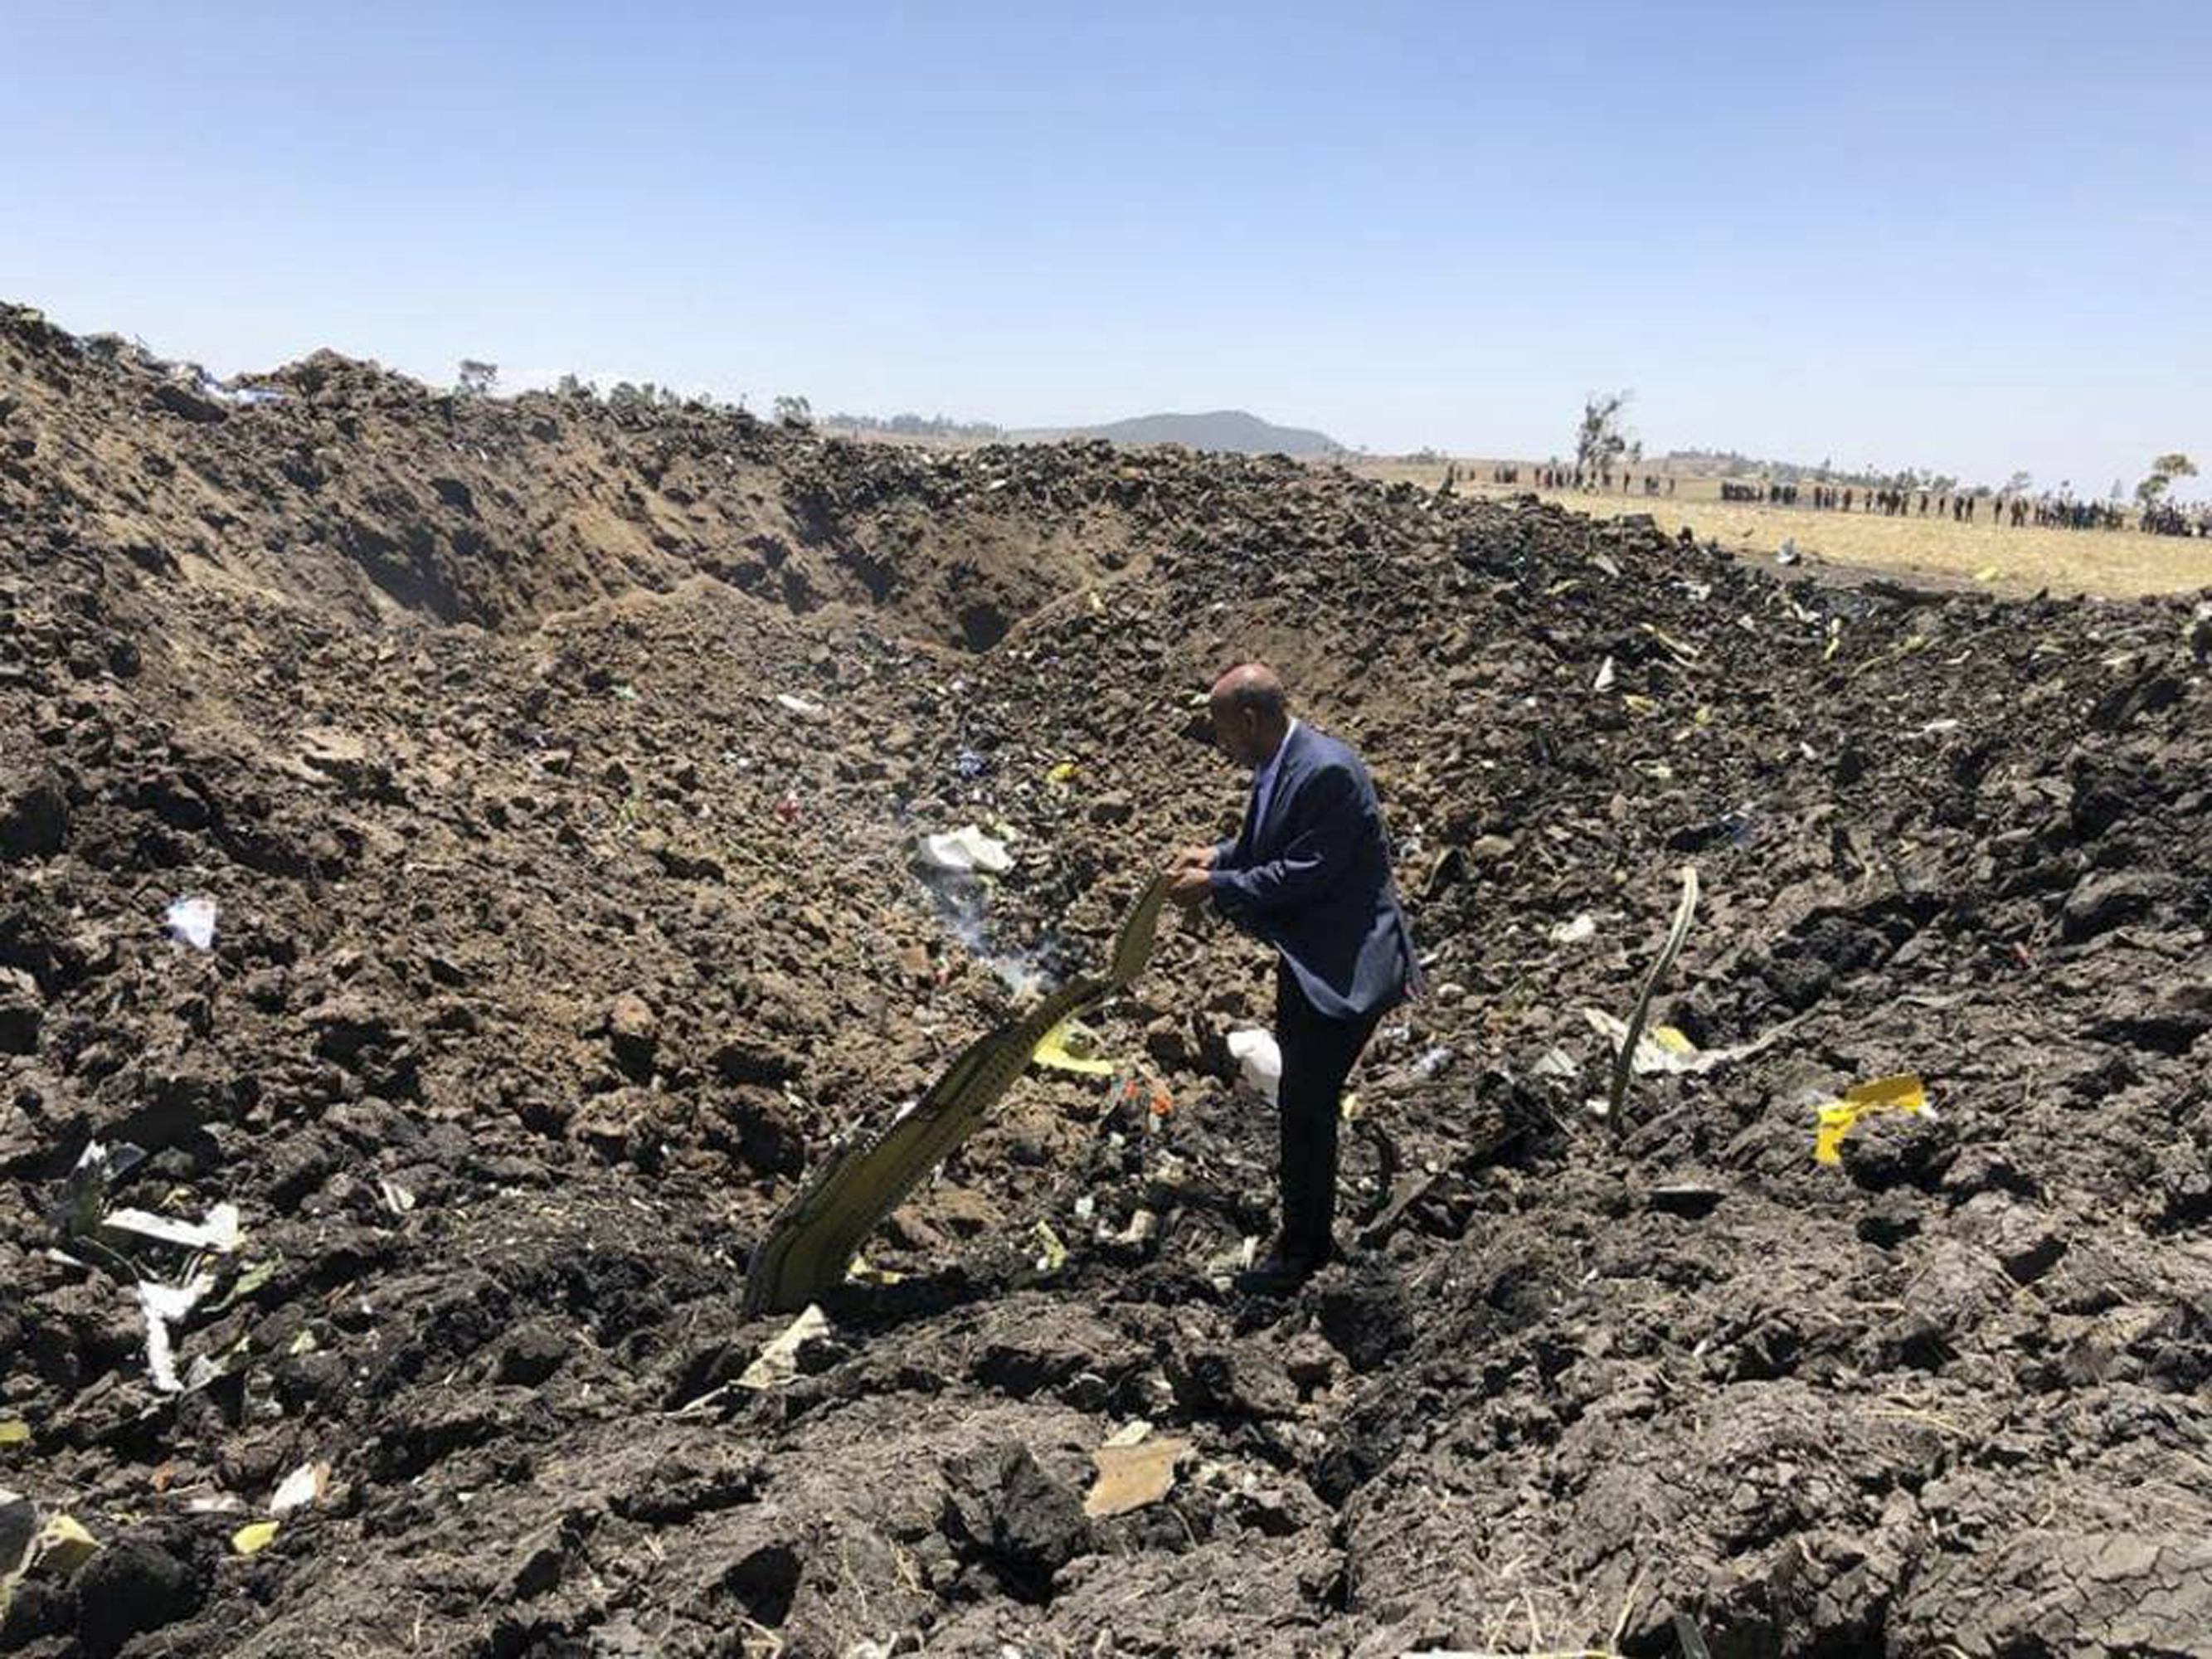 In this photo taken from the Ethiopian Airlines Facebook page, the CEO of Ethiopian Airlines, Tewolde Gebremariam, looks at the wreckage of the plane that crashed shortly after takeoff from Addis Ababa, Ethiopia, Sunday March 10, 2019. An Ethiopian Airlines flight crashed shortly after takeoff from Ethiopia's capital on Sunday morning, killing all 157 people thought to be on board, the airline and state broadcaster said, as anxious families rushed to airports in Addis Ababa and the destination, Nairobi.